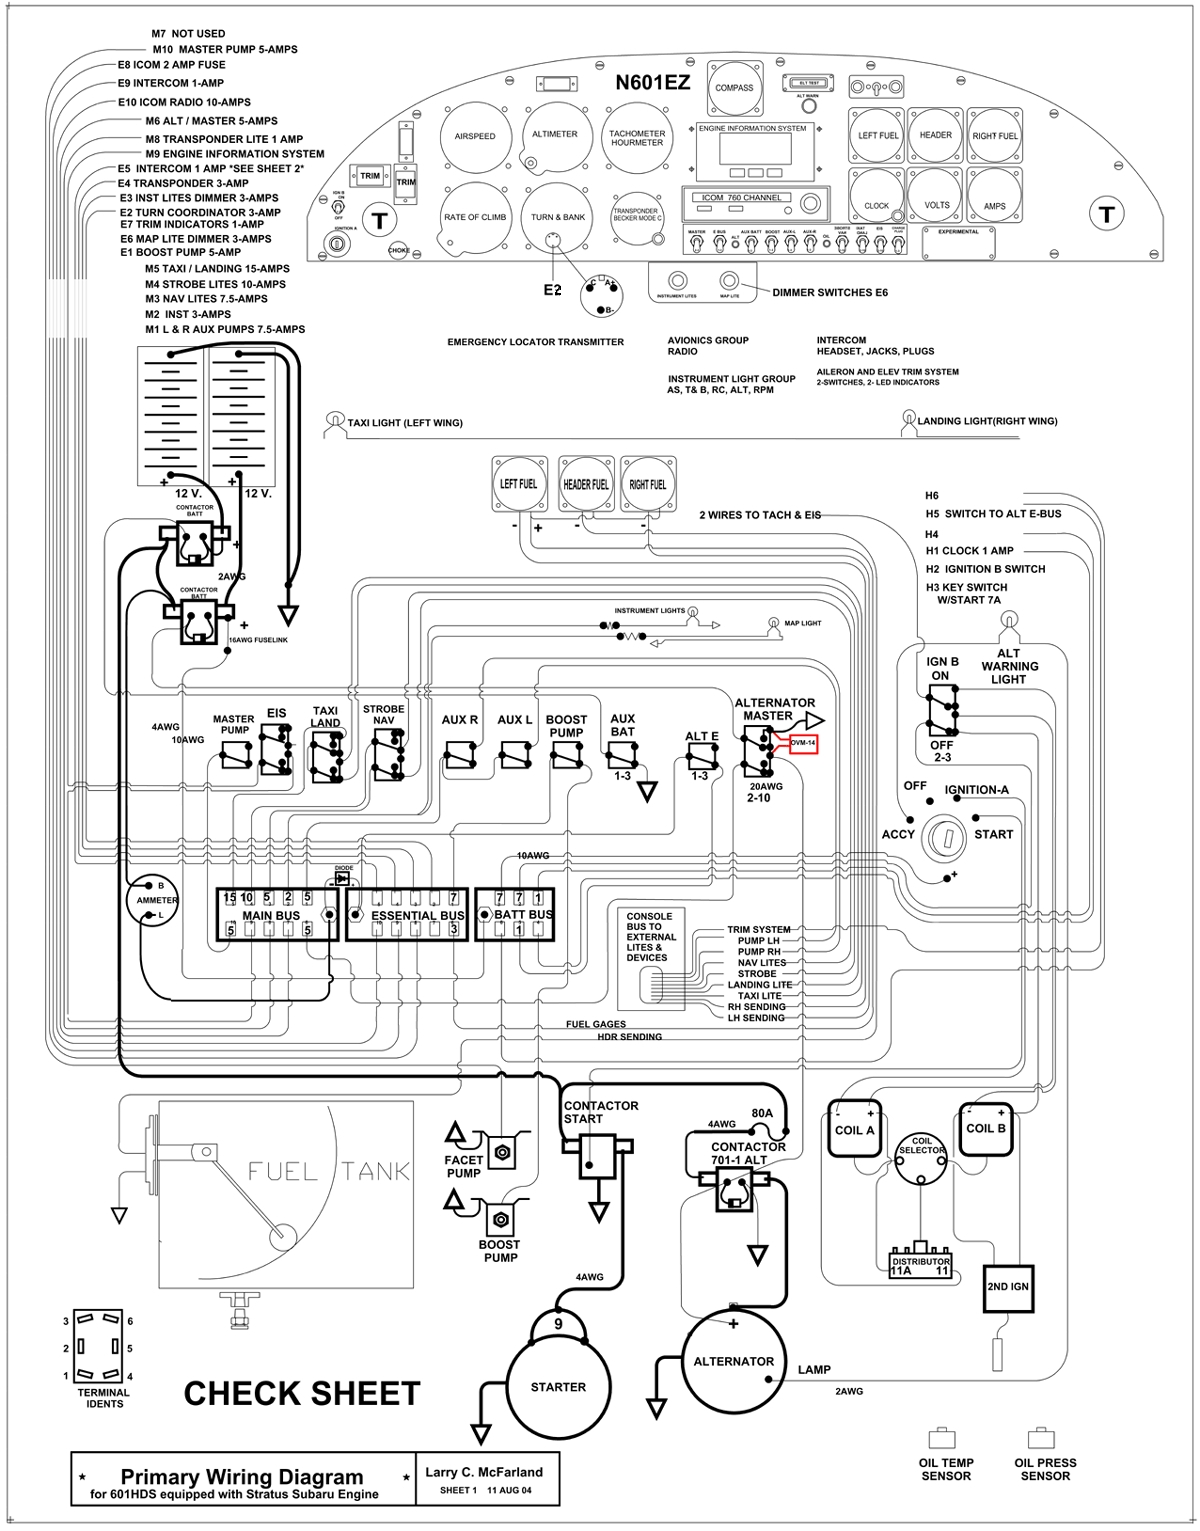 skytec starter wiring diagram Collection-AeroElectric List Archive Browser 16-j